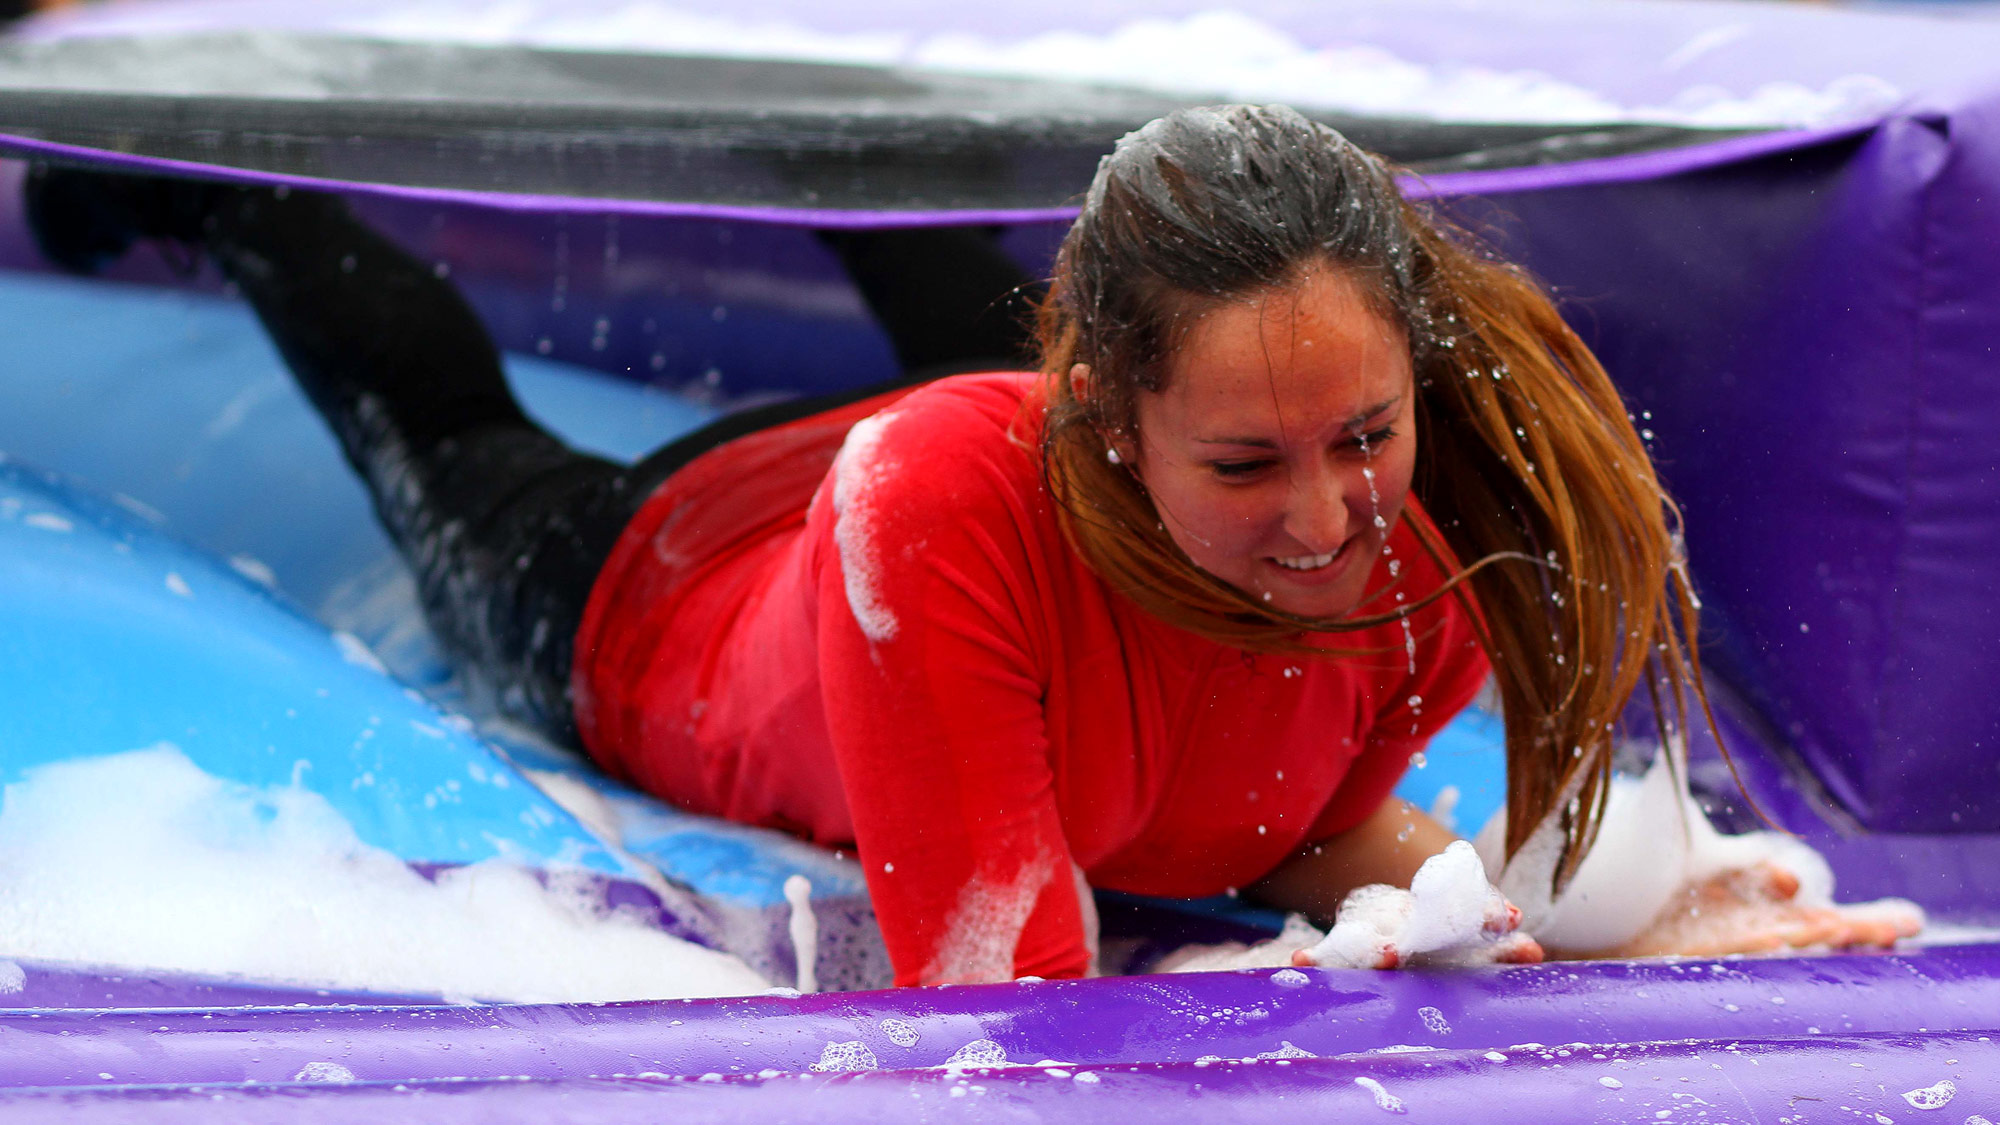 Crawling through the bubbles on It's A Knockout